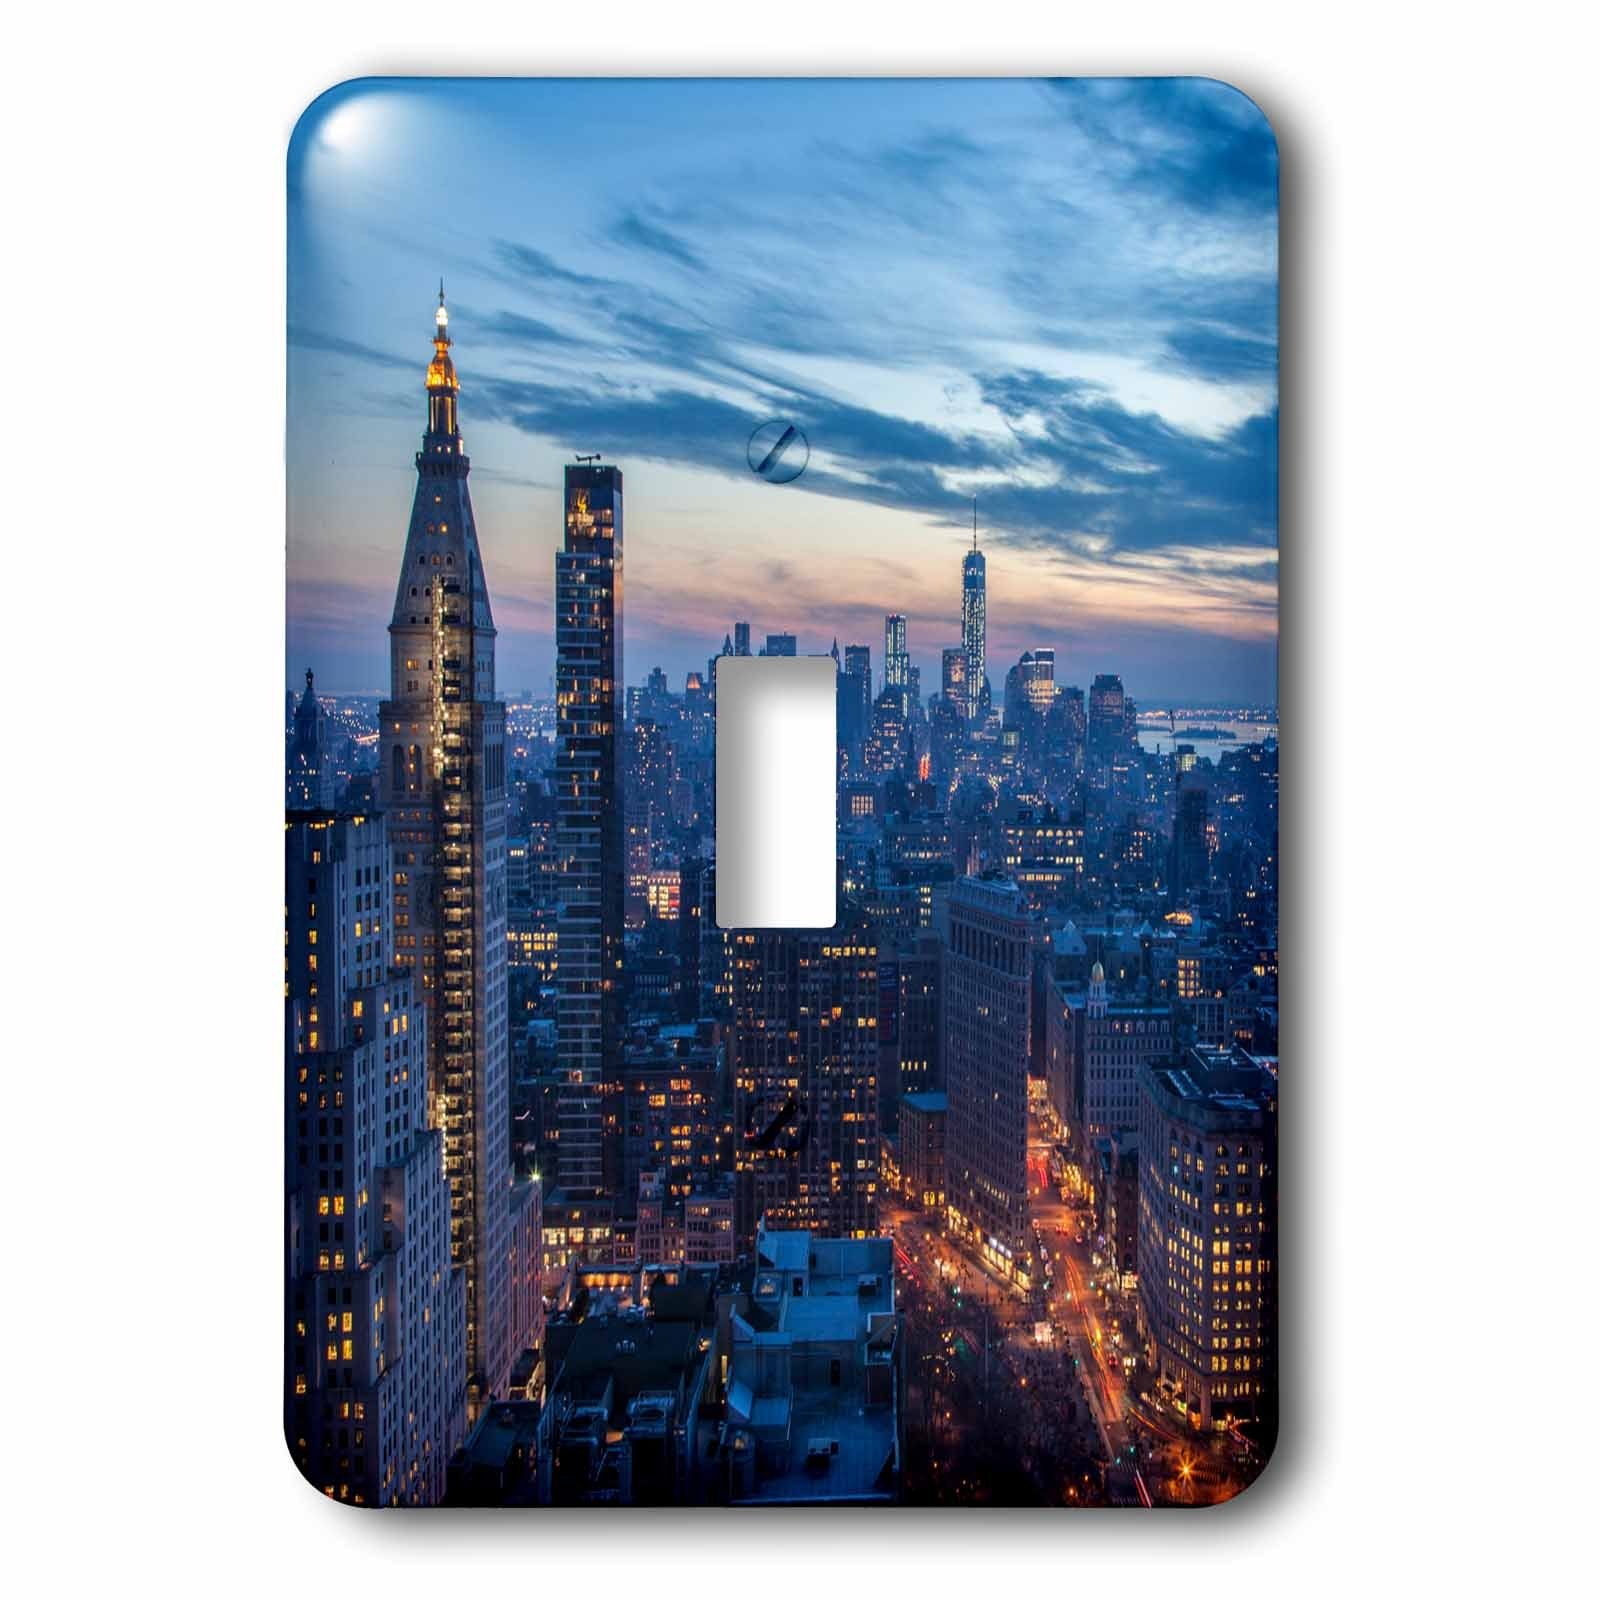 Danita Delimont - Urban - New York City, NY, USA - Light Switch Covers - single toggle switch (lsp_231334_1) by 3dRose